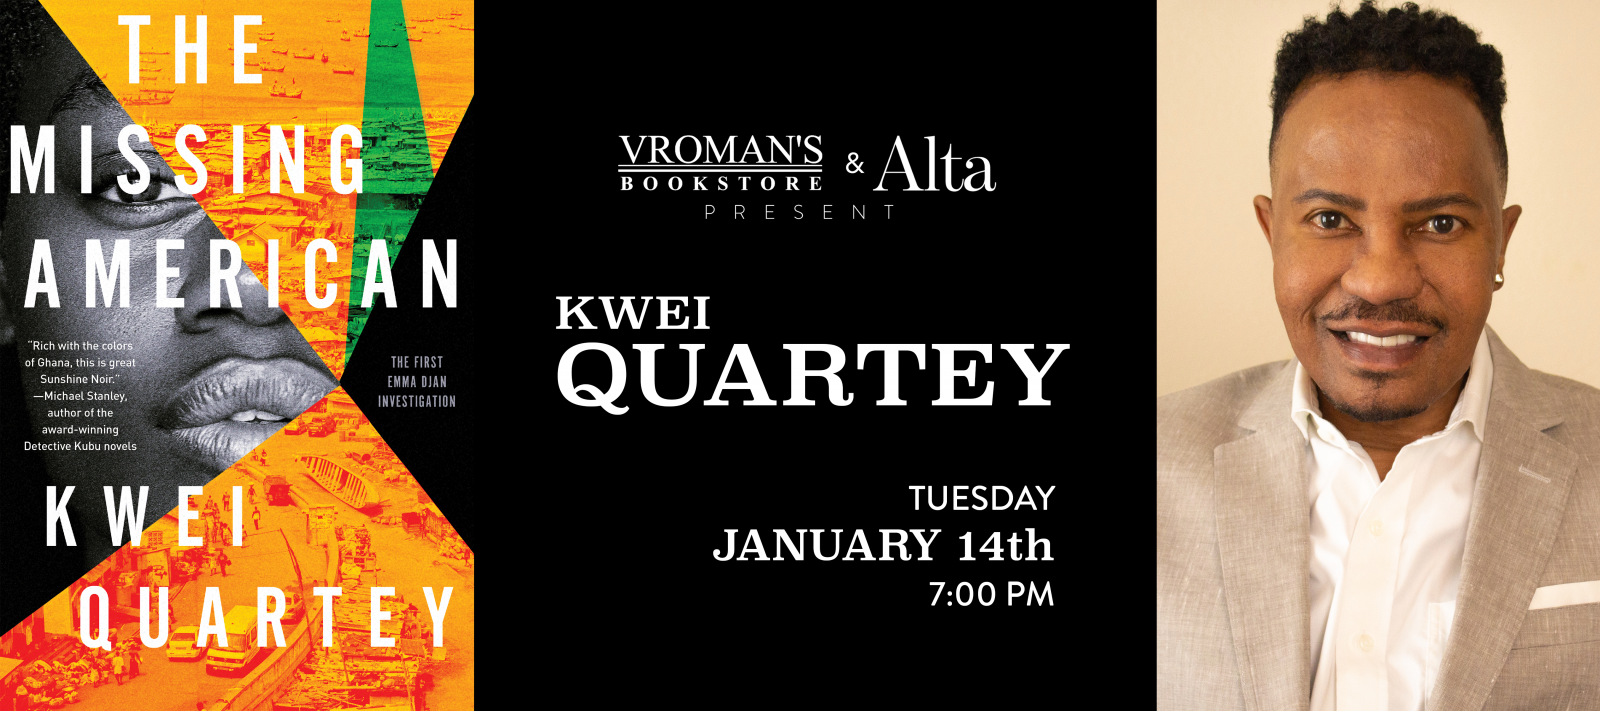 Kwei Quartey book signing Tuesday January 14th at 7pm